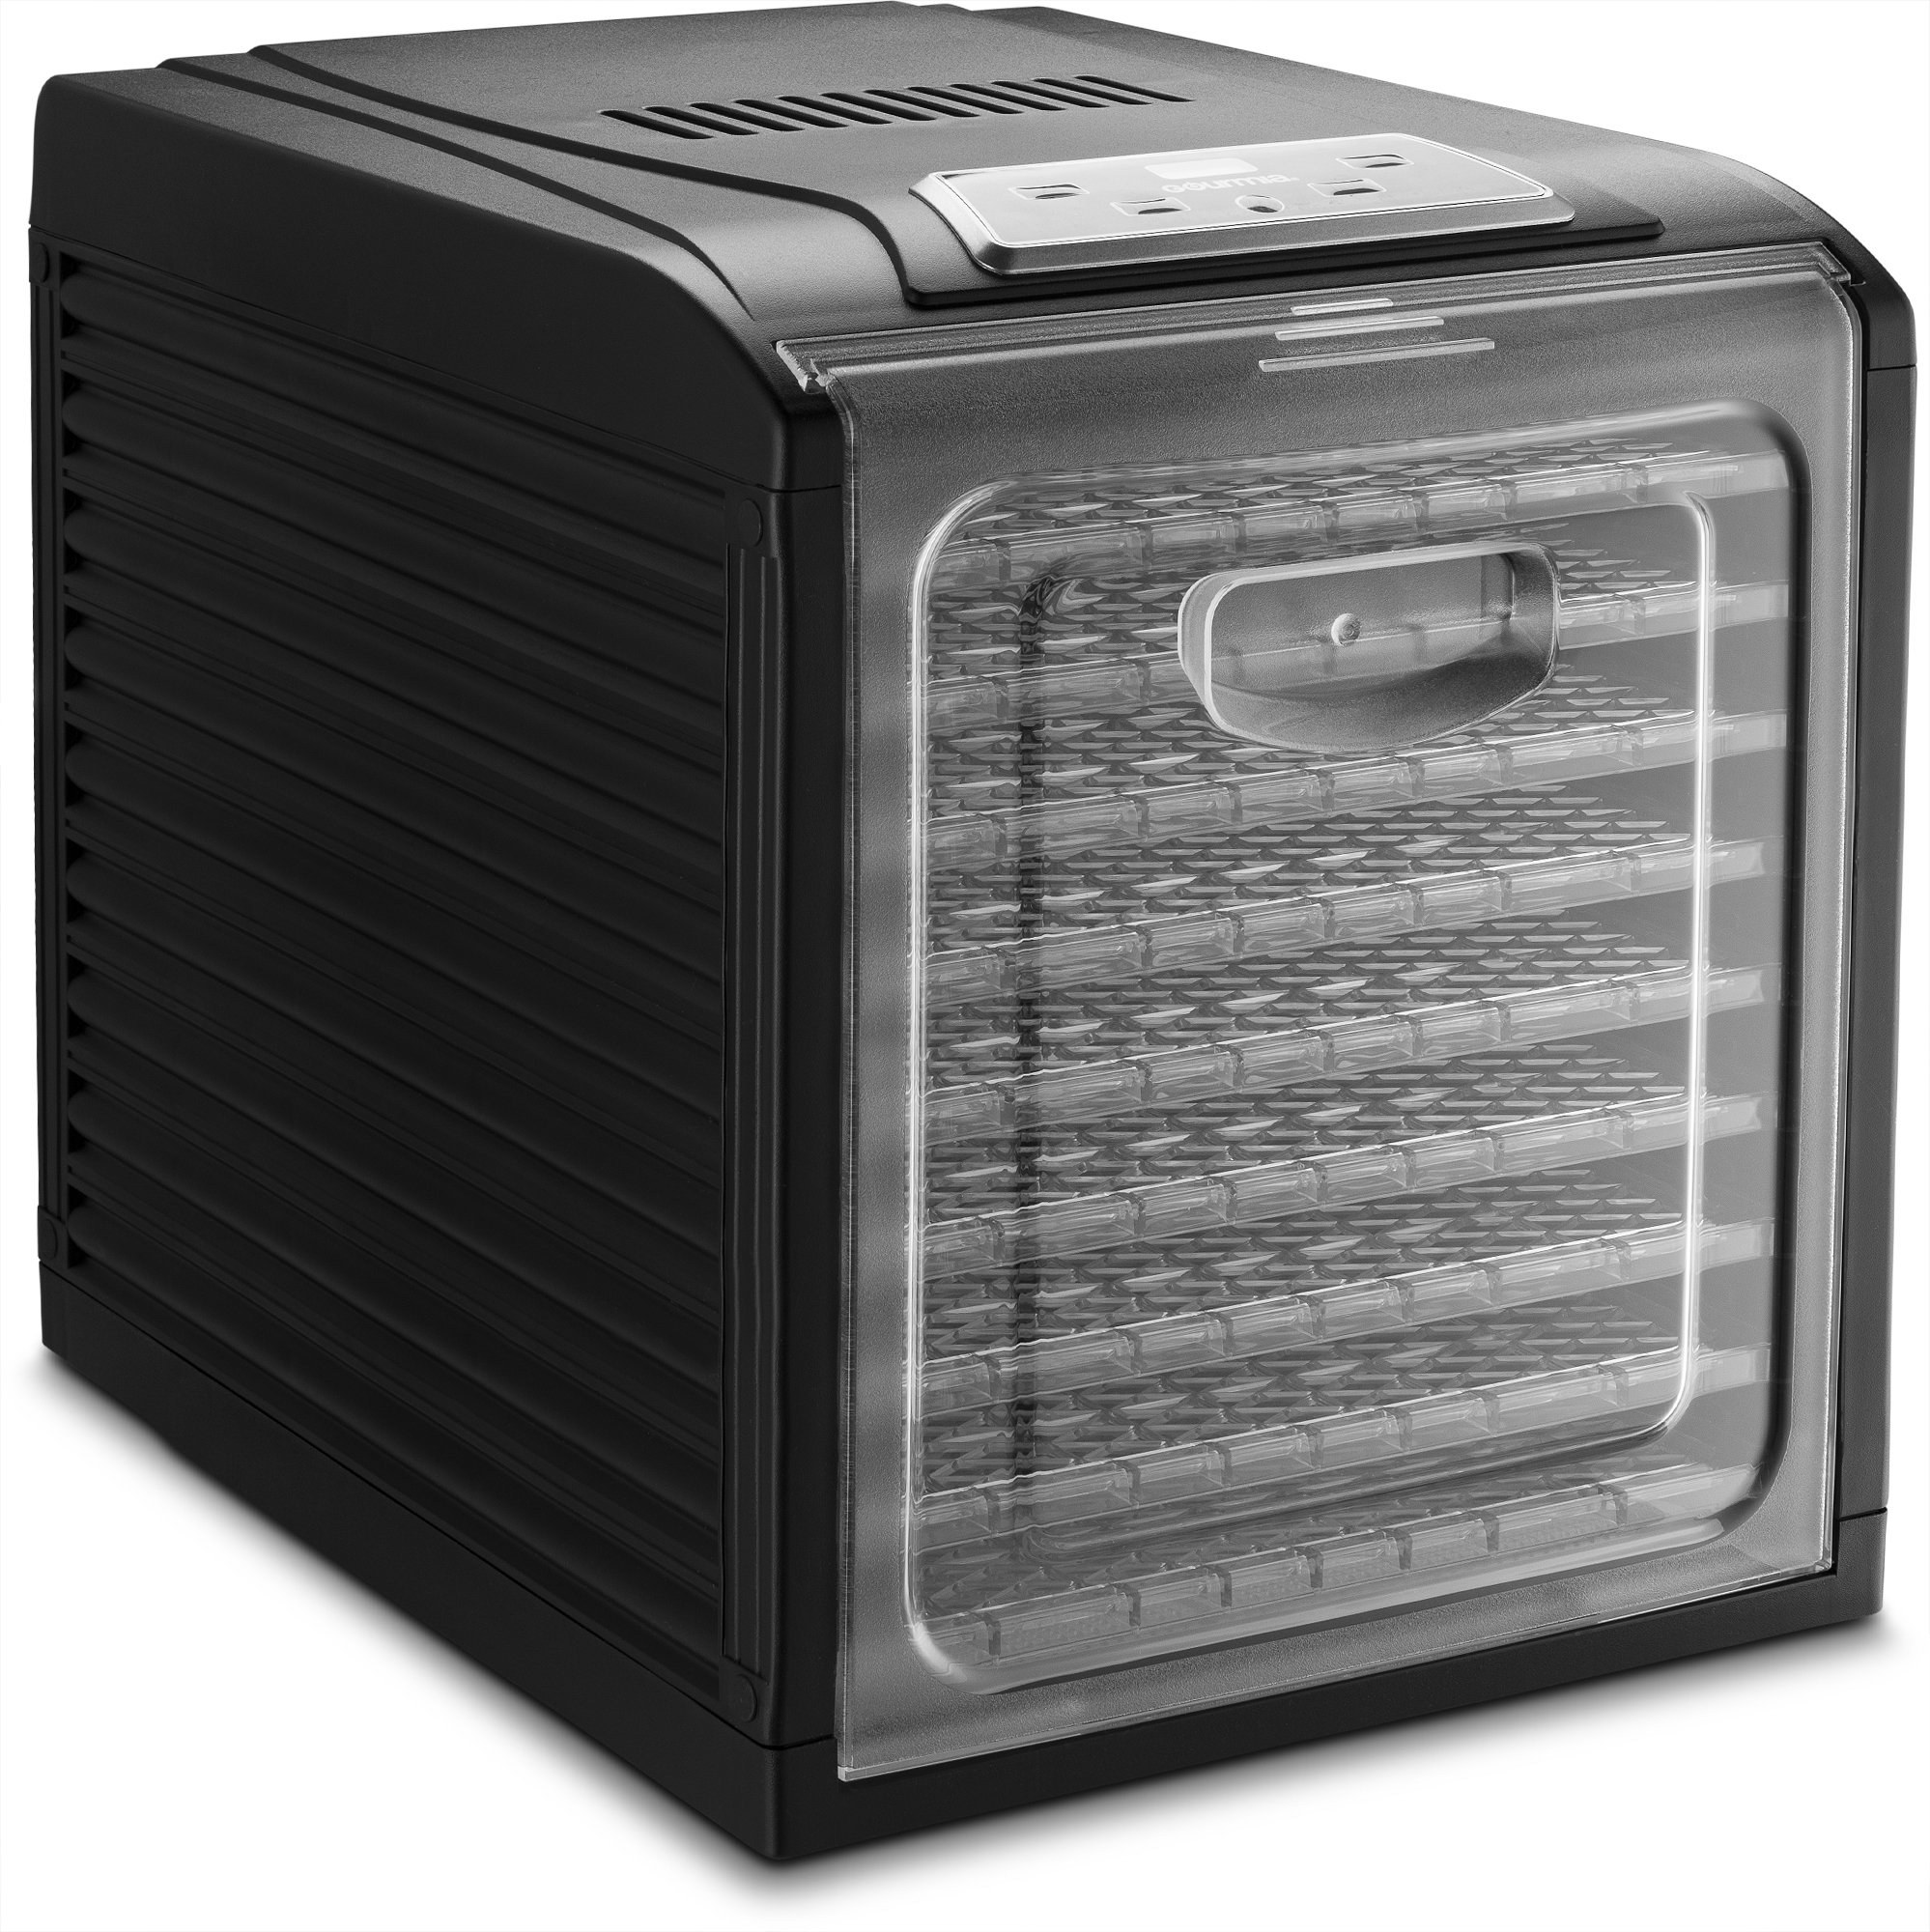 Gourmia GFD1950 Digital Food Dehydrator - 9 Drying Trays Plus Fruit Leather Tray - Digital Temperature Control - Transparent Window - Free recipe Book Included by Gourmia (Image #3)